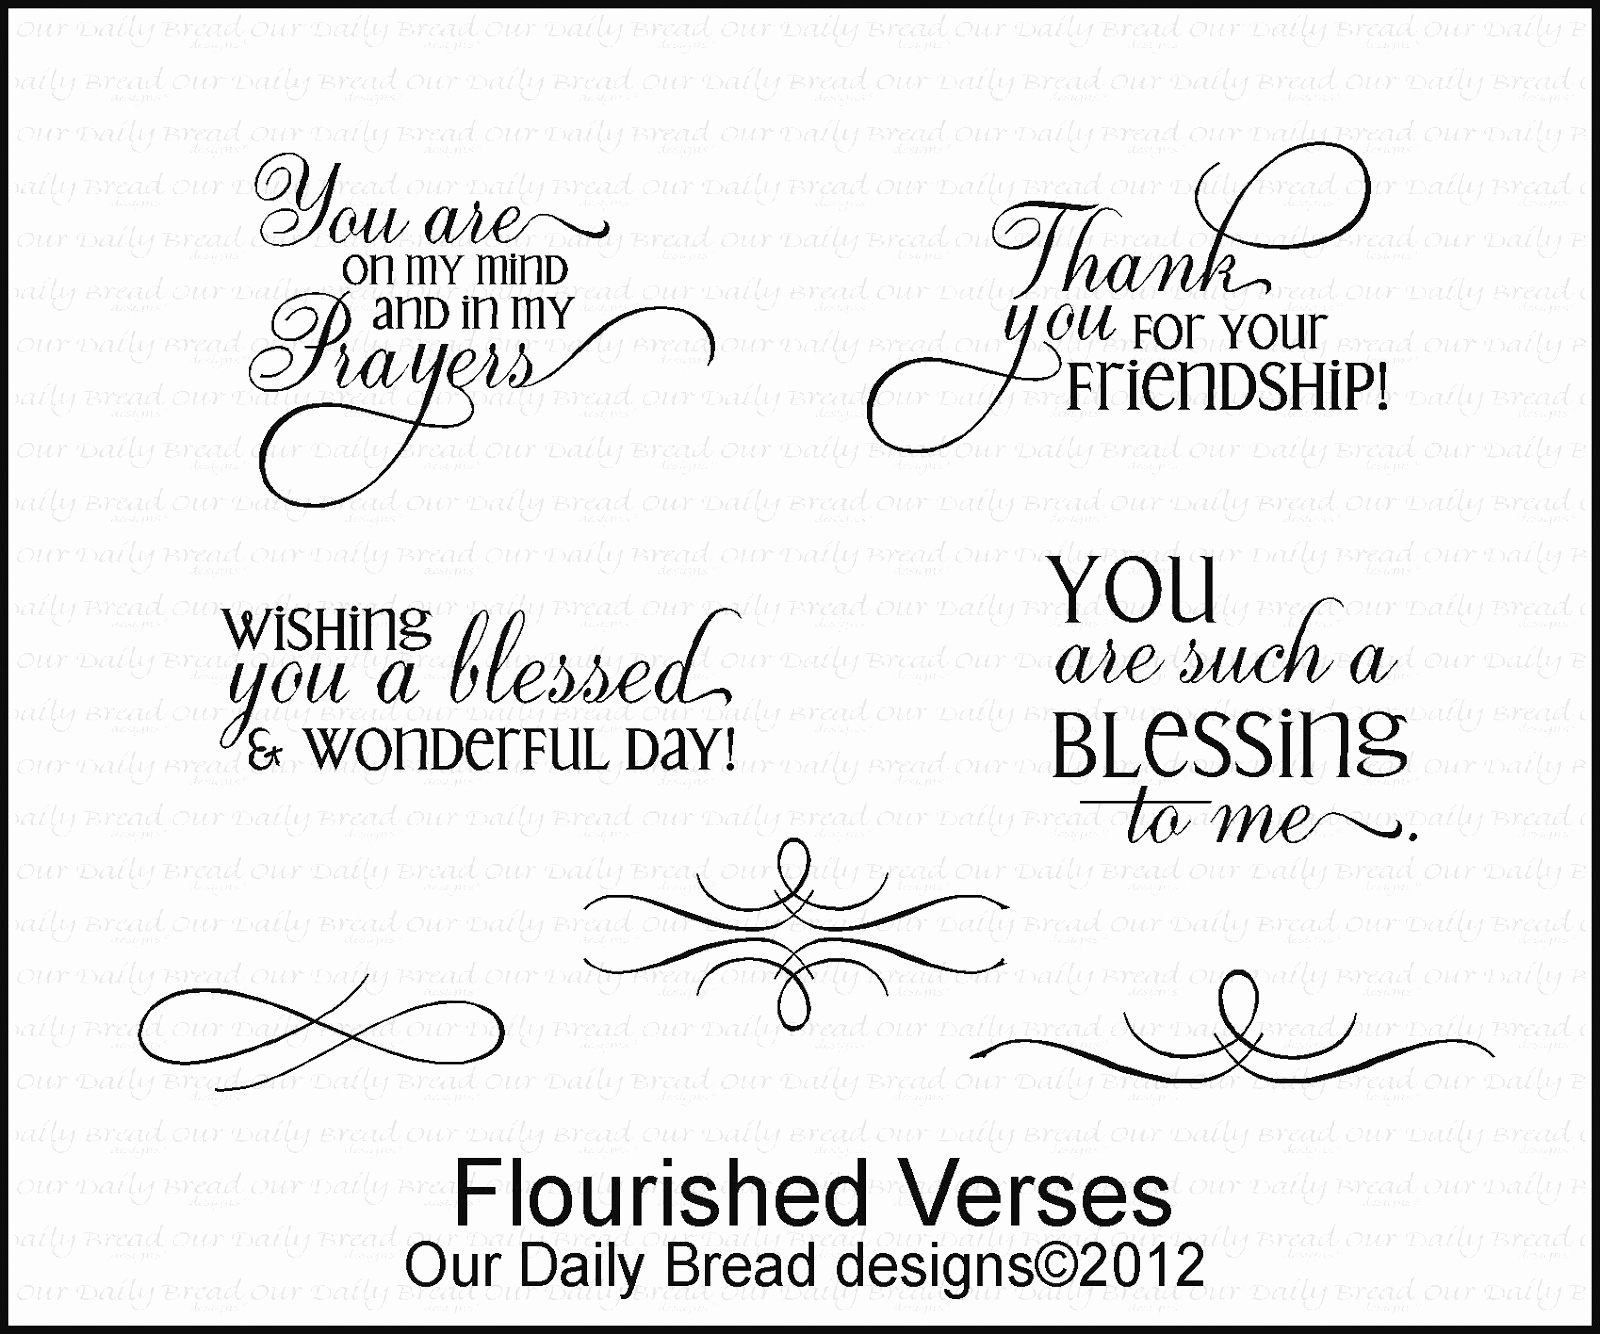 birthday card verses for friends ; 80th-birthday-card-verses-beautiful-91-best-graph-birthday-card-verses-for-friends-of-80th-birthday-card-verses